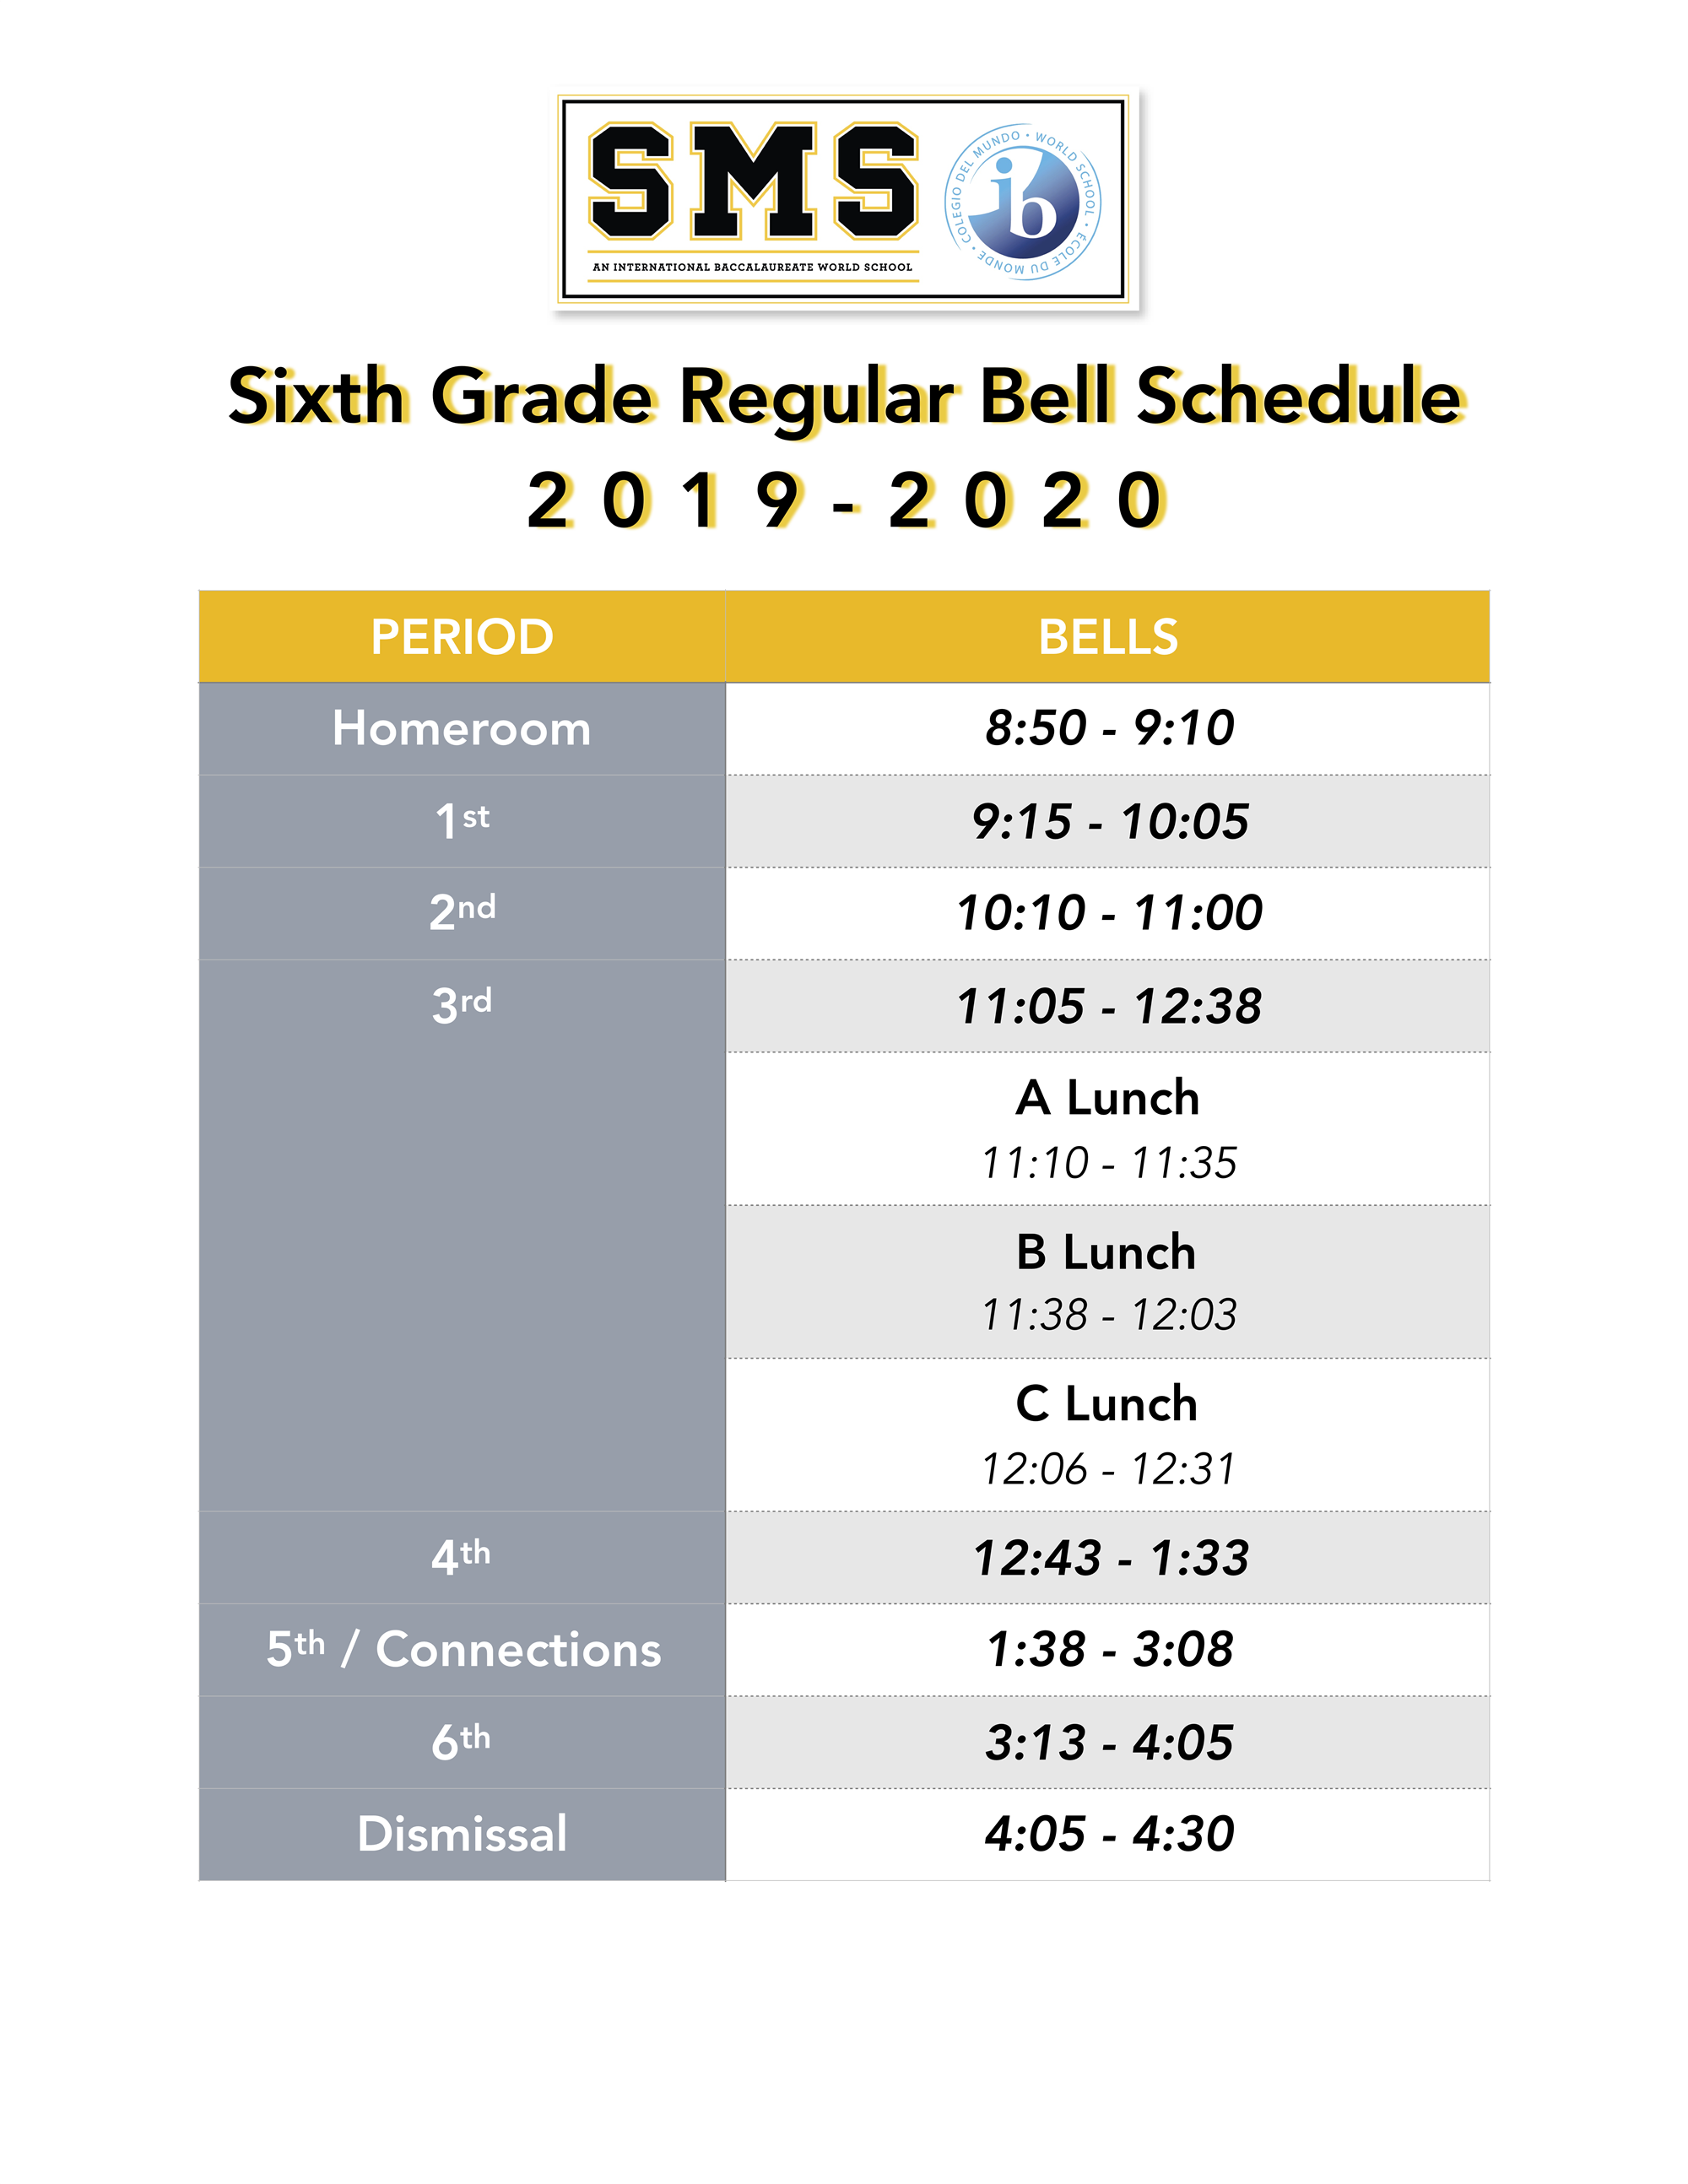 6th grade regular bell schedule. Call campus' main office for more info 4048025650